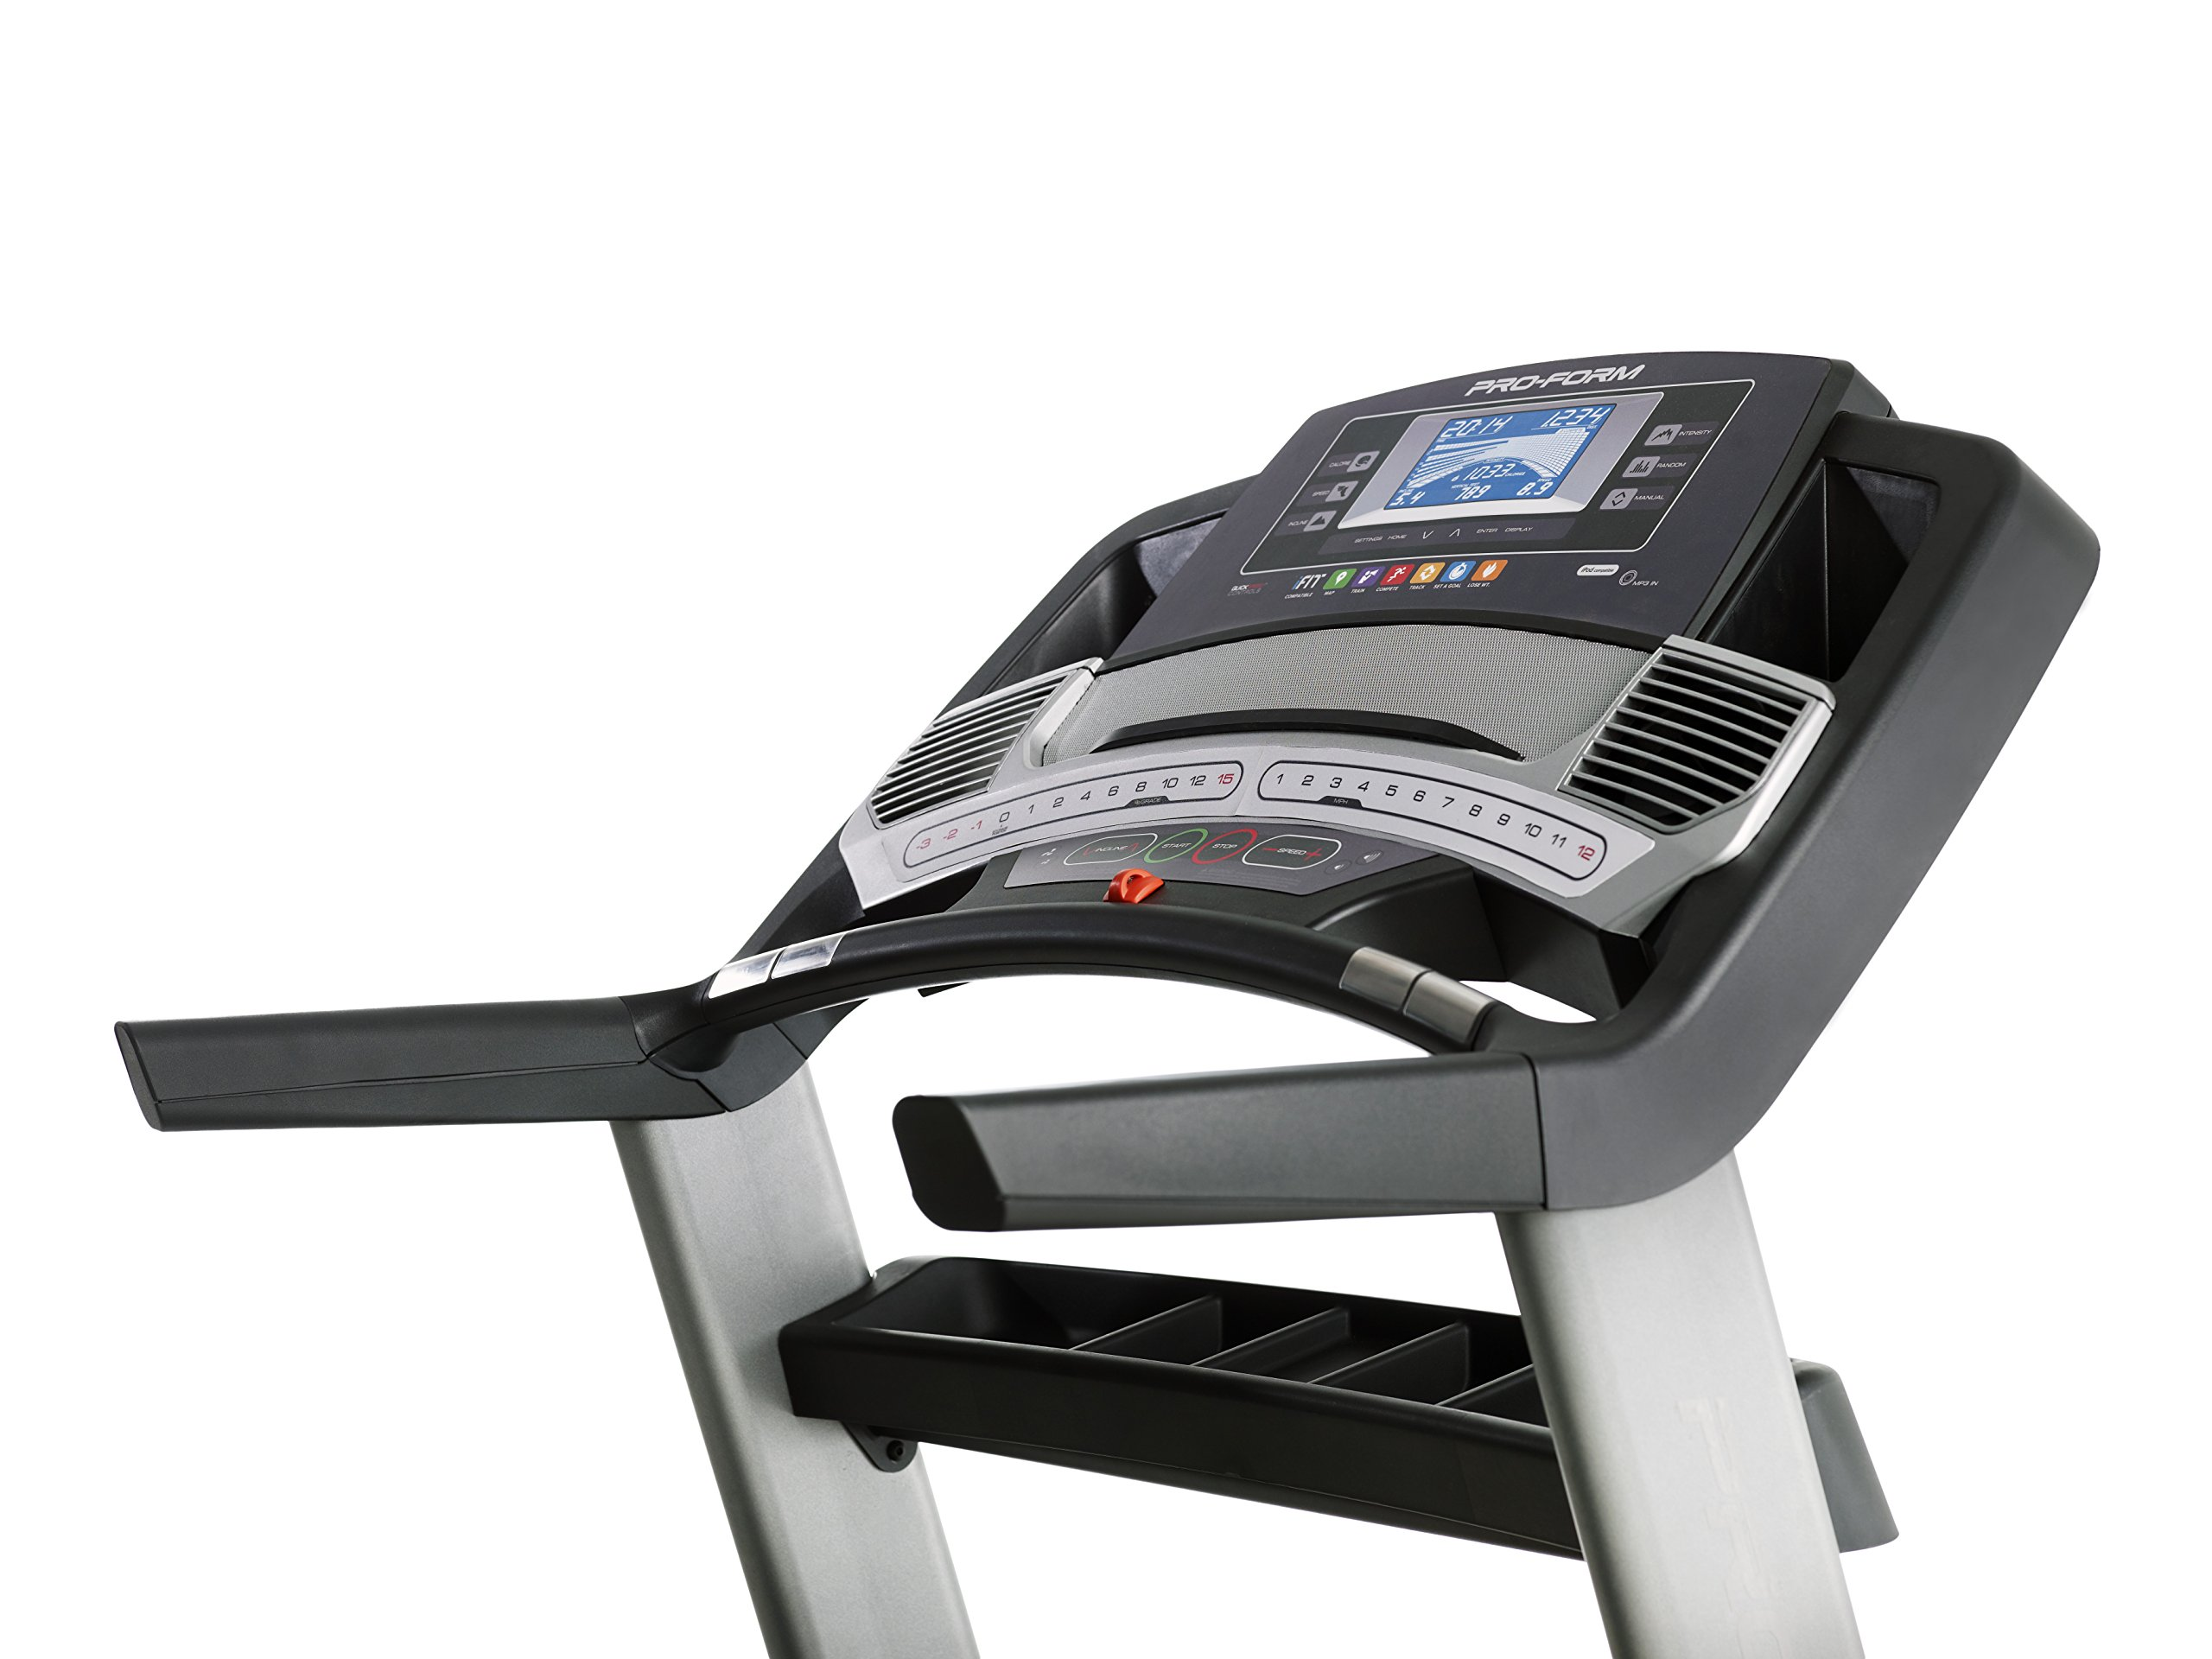 ProForm Pro 2000 Treadmill - Smart Monkey Fitness